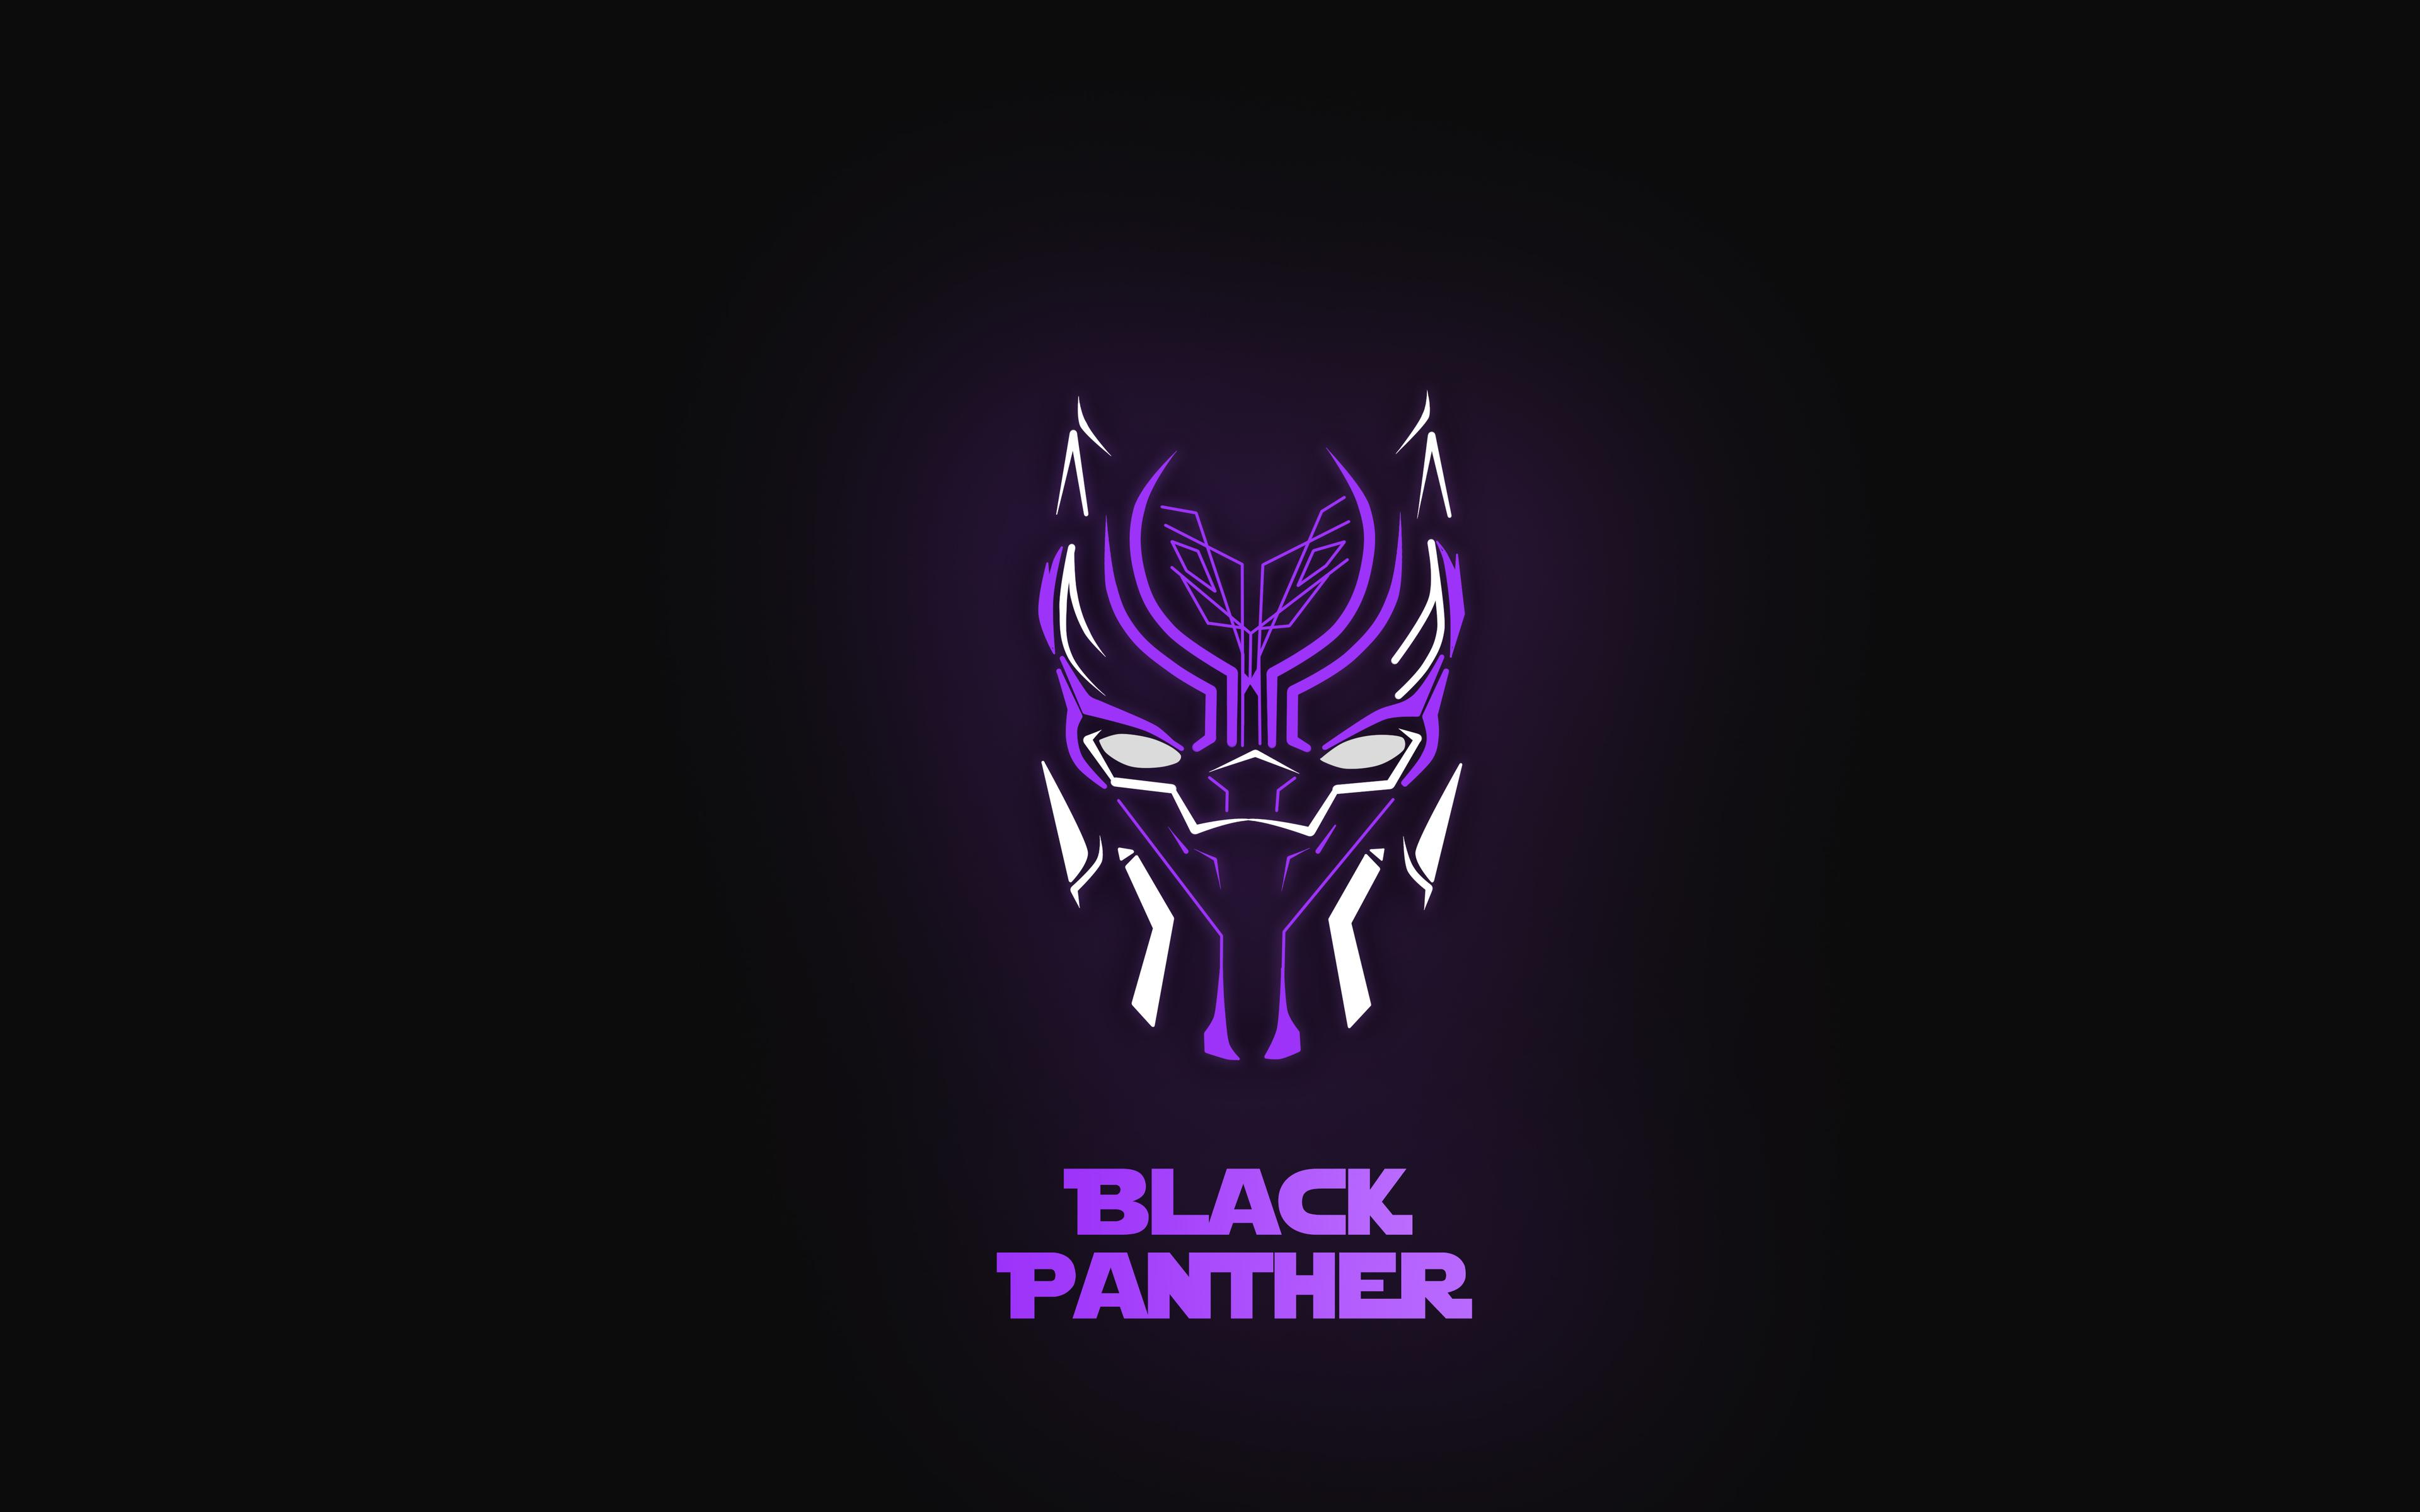 3840x2400 Black Panther Neon 5k 4k HD 4k Wallpapers, Image